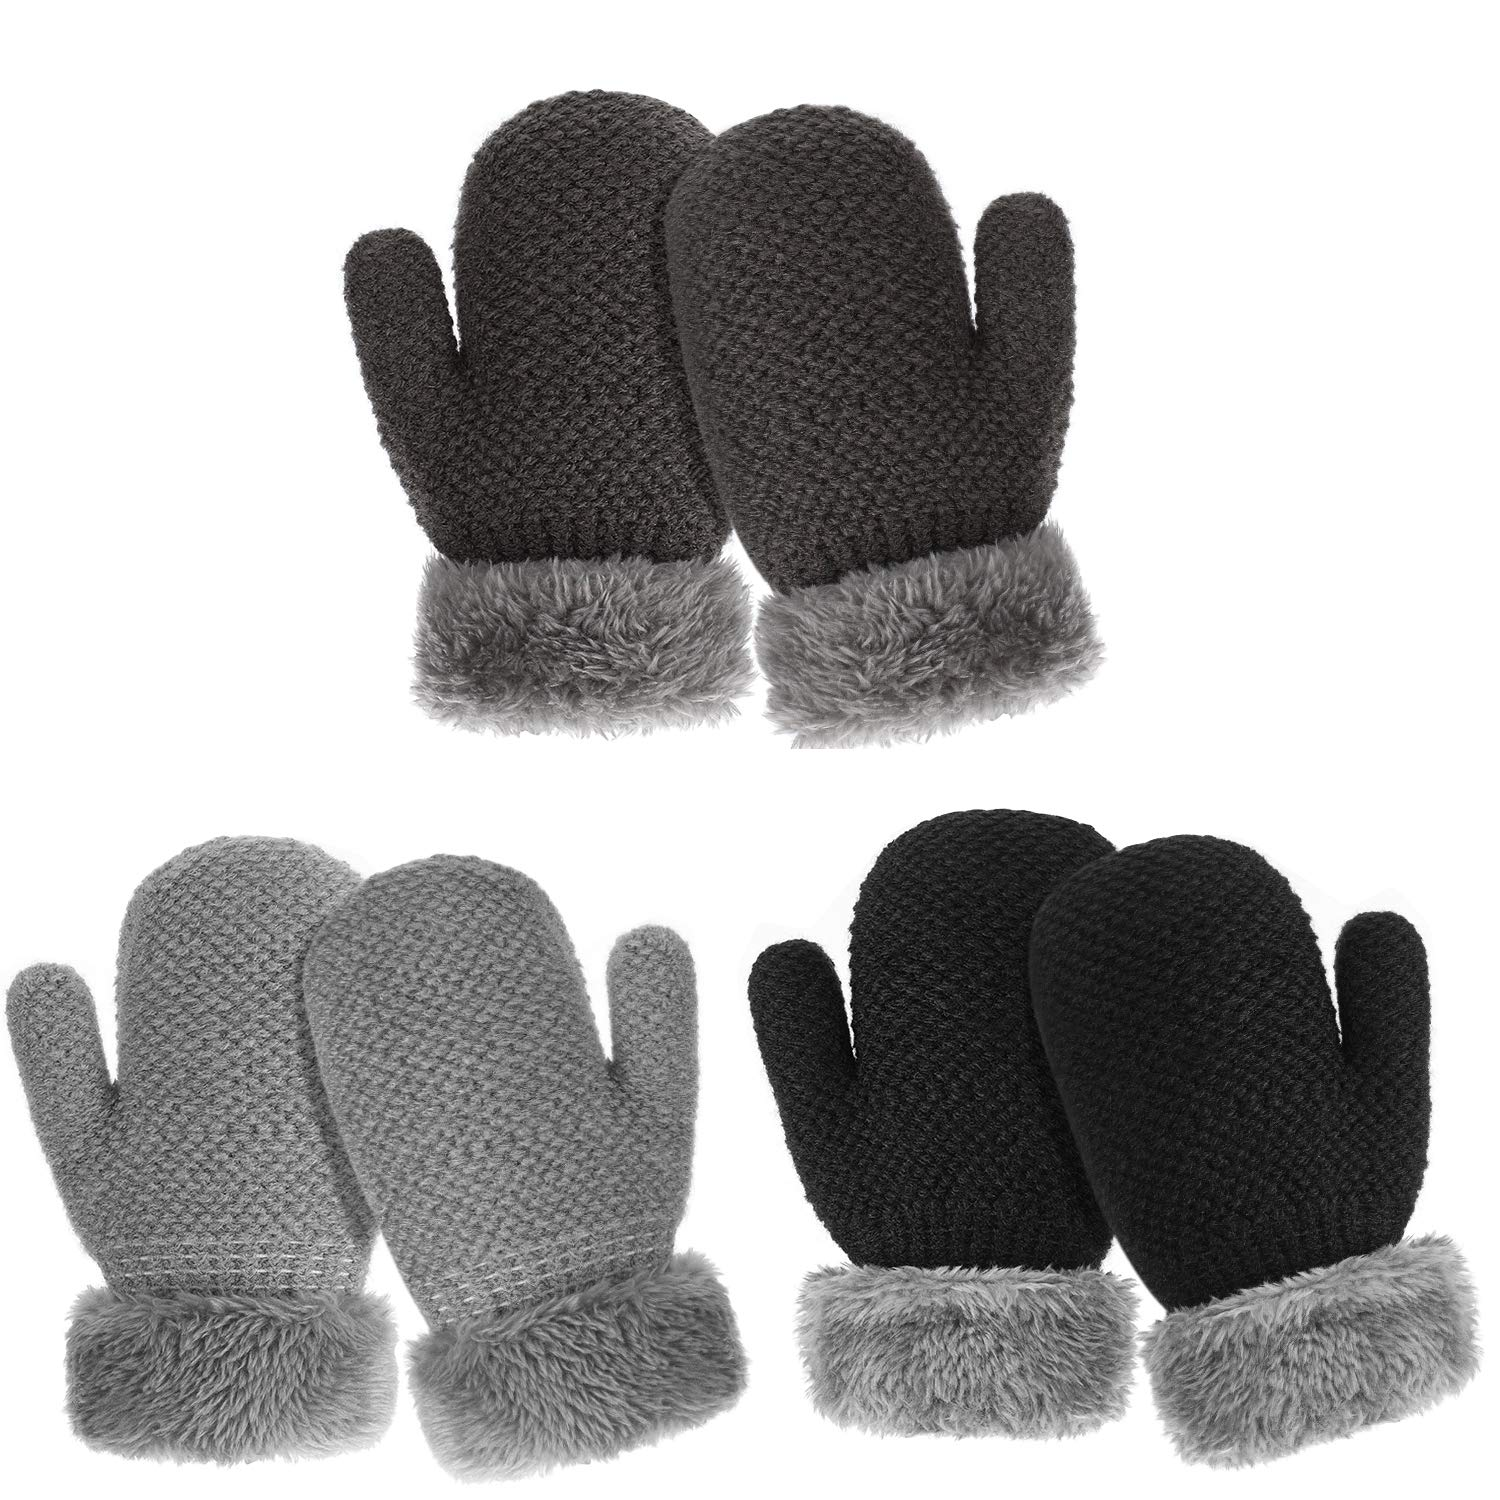 TAGVO 3 Pairs Winter Toddler Warm Gloves Boys Girls Sherpa Lined Knitted Mittens